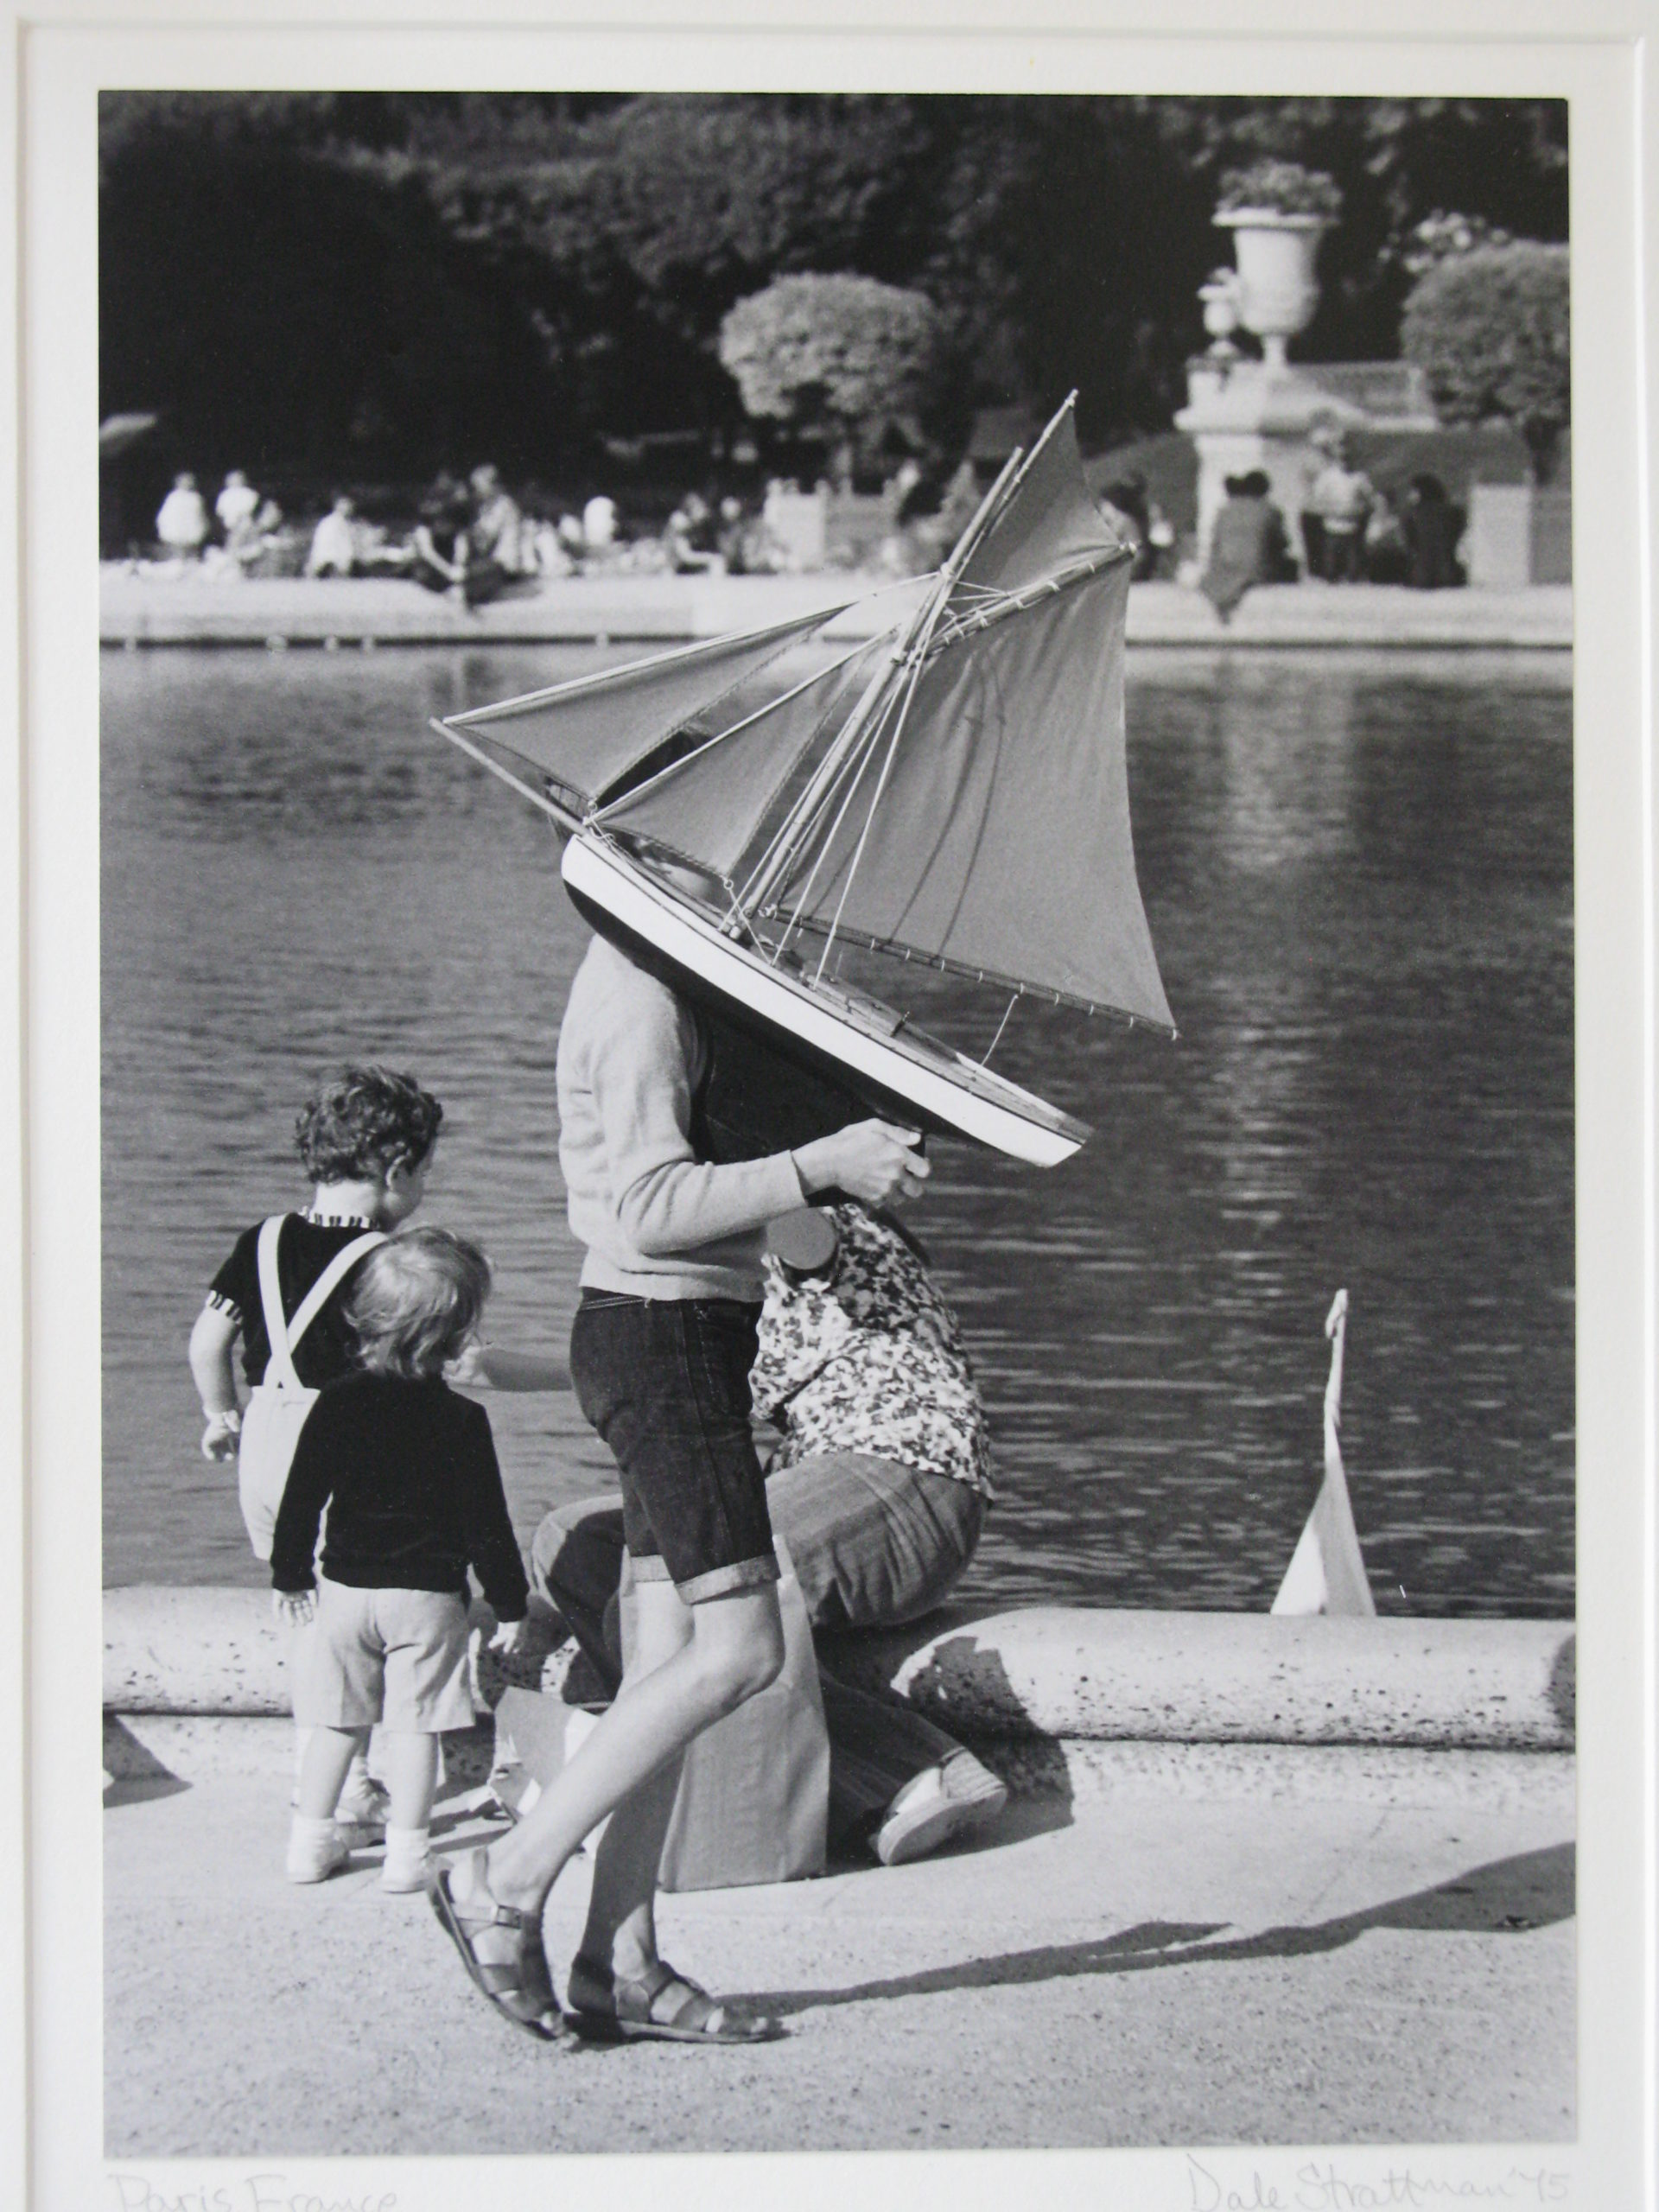 In a photo by Dale Strattman, a boy carries a toy boat in front of a reflecting pool.